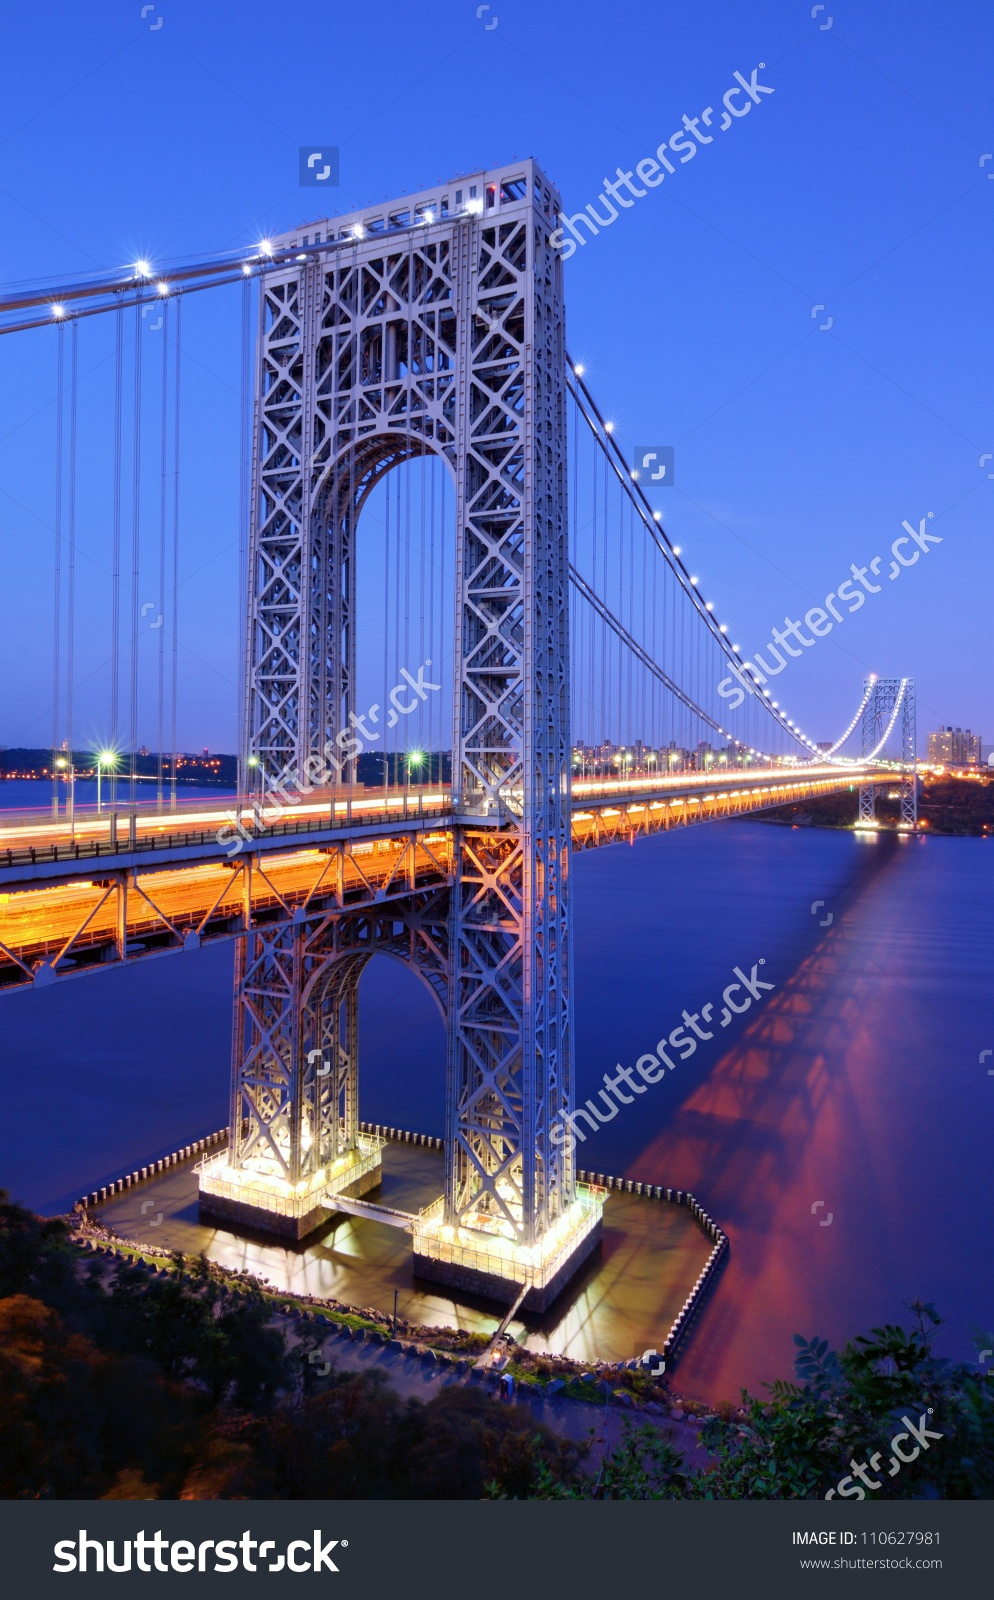 George Washington Bridge Spans Hudson River Stock Photo 110627981.